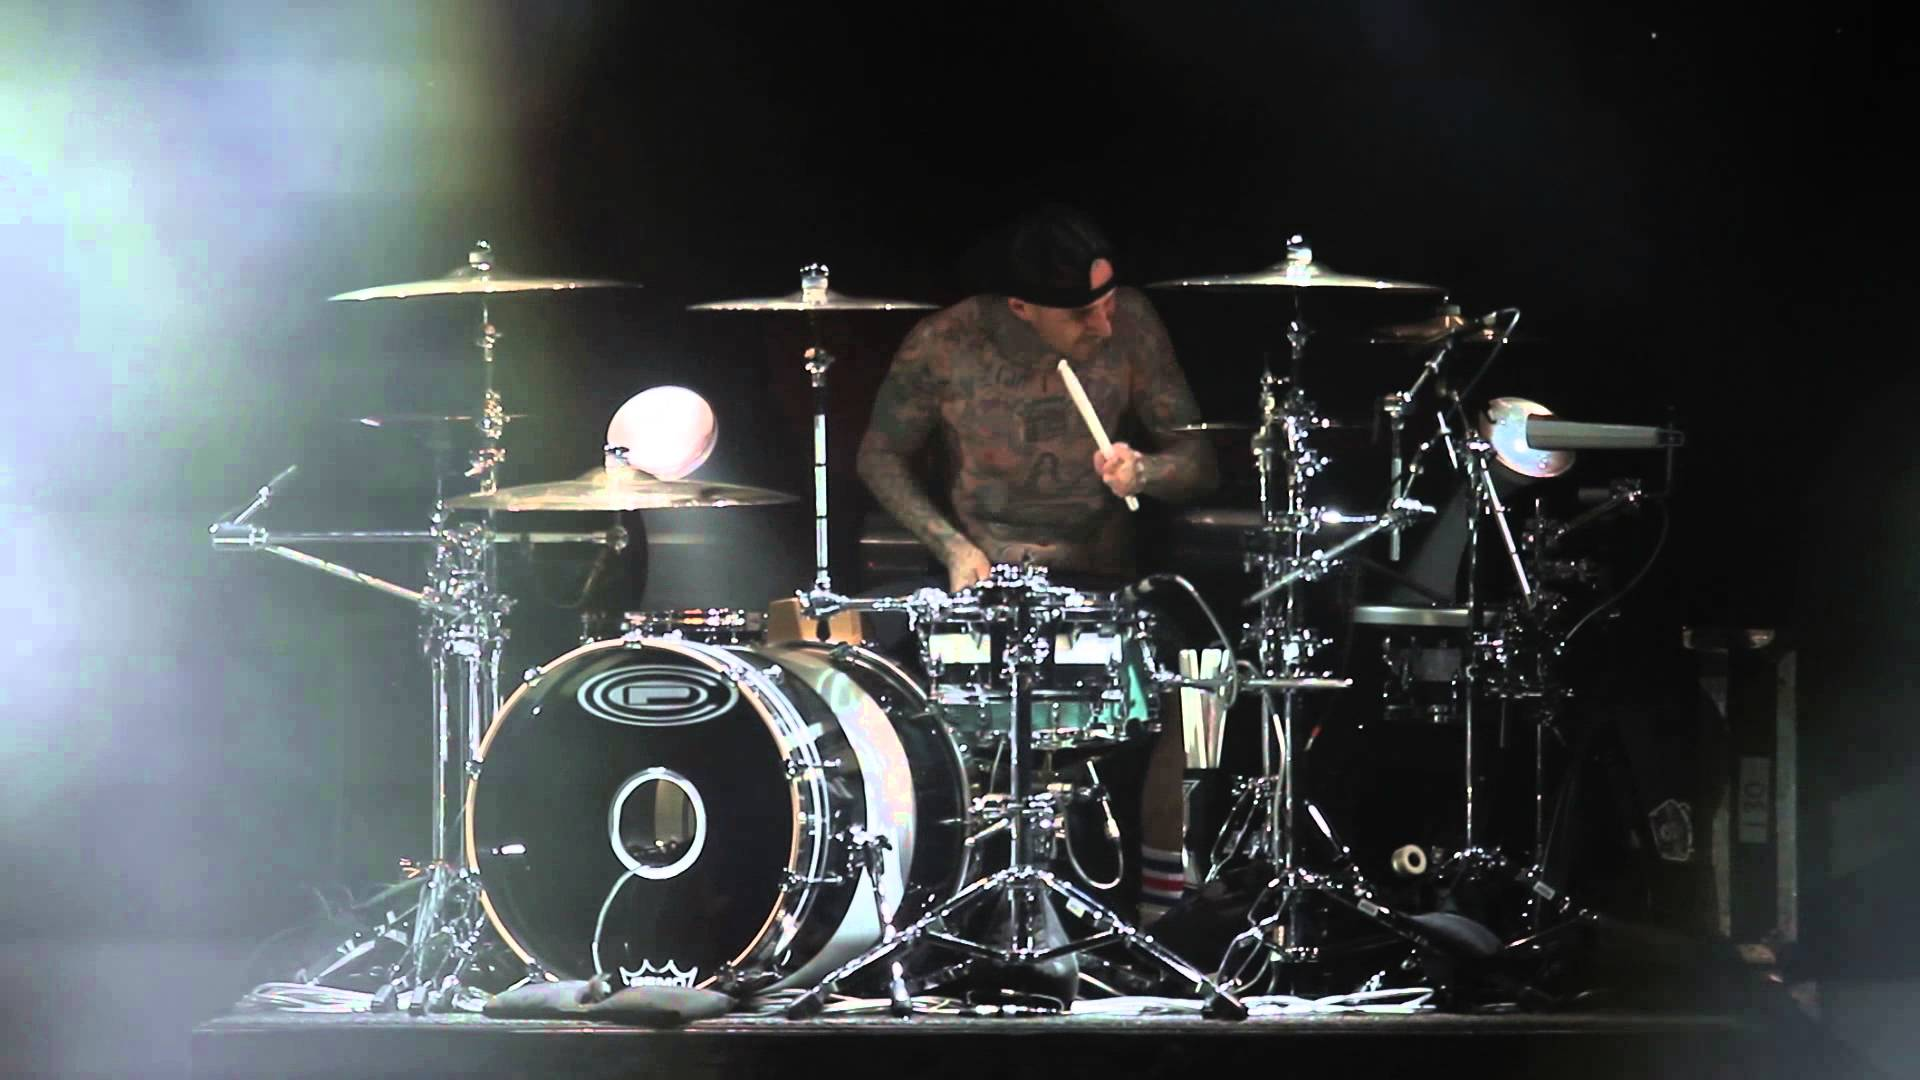 HD) Travis Barker at X-Fest Calgary 2013 - YouTube